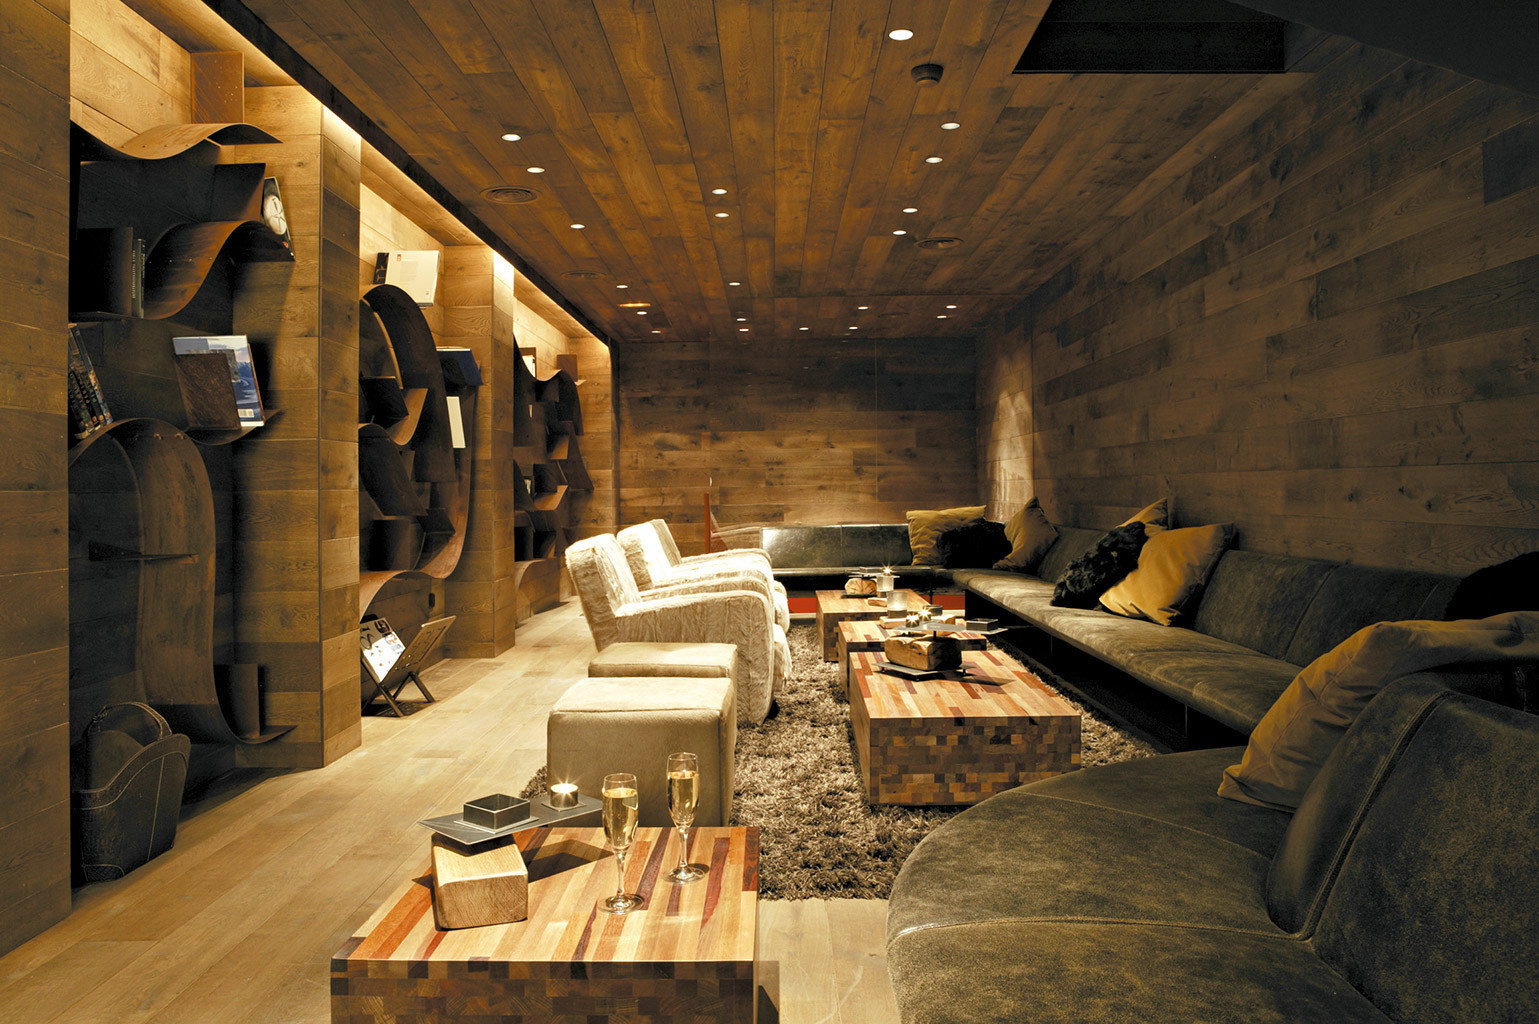 Adventure Dining Drink Eat Lodge Resort Rustic living room Lobby home tourist attraction basement stone